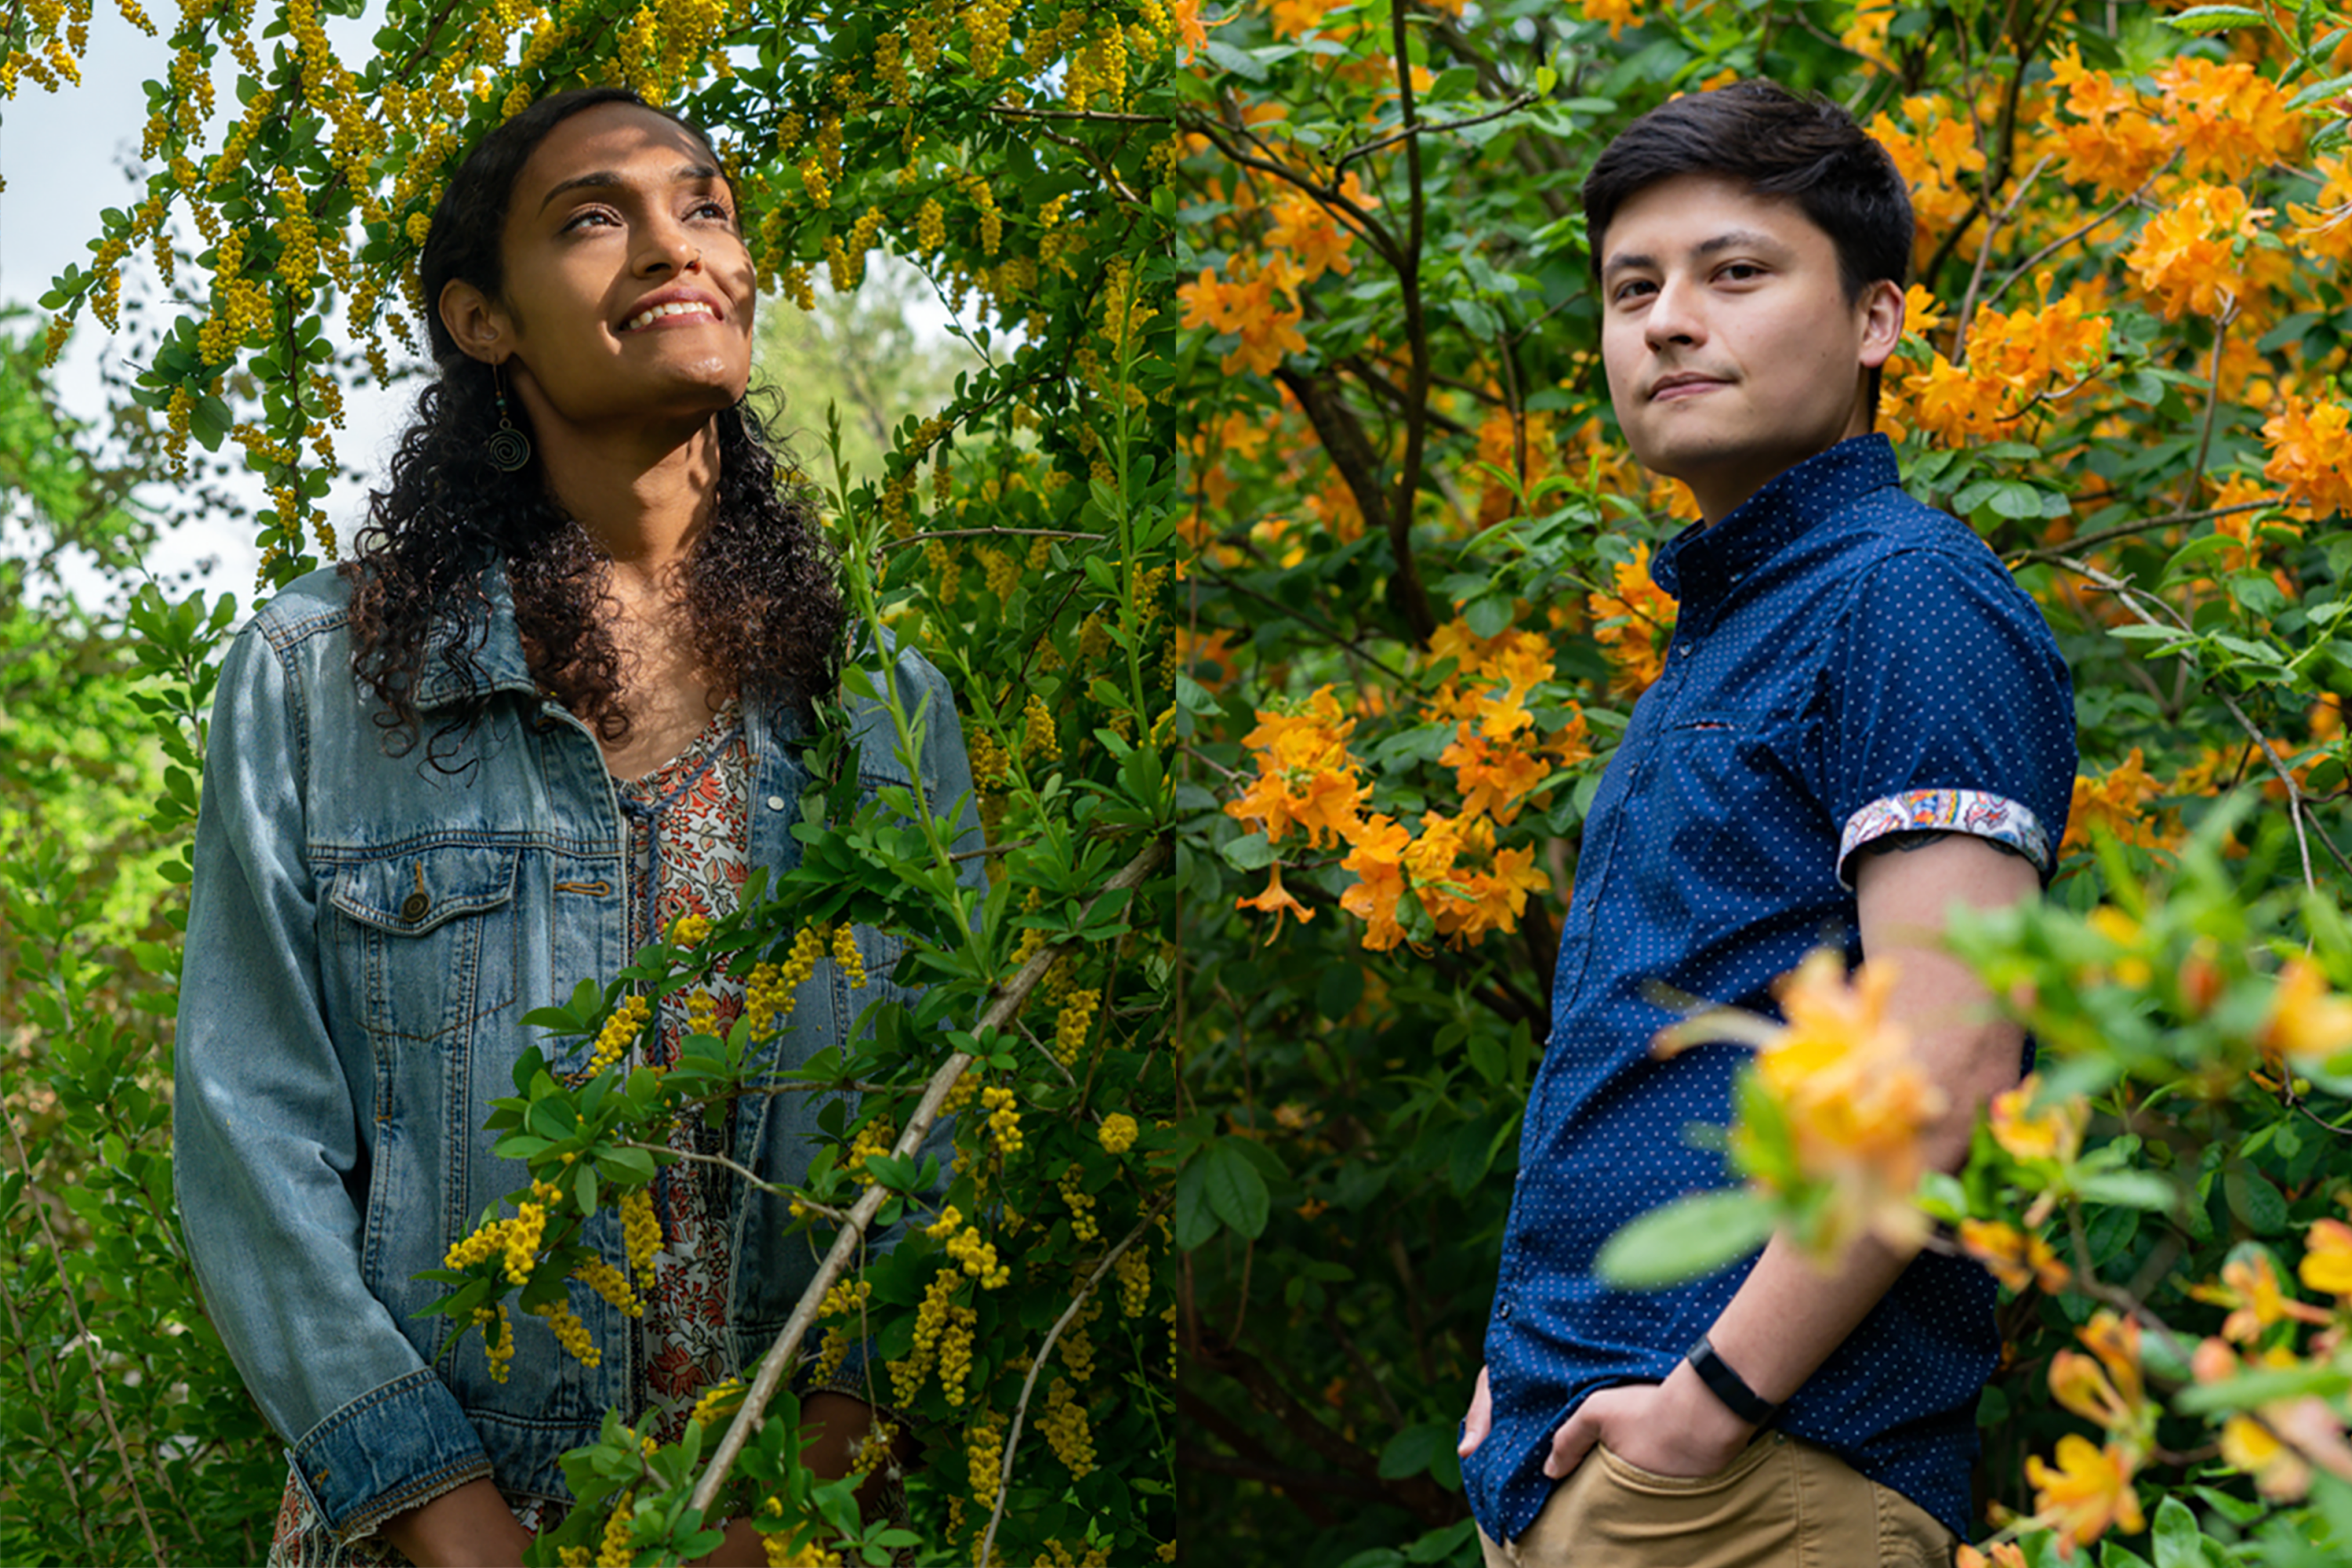 3 Questions: Sheena Vasquez and Christian Loyo on communicating science through poetry